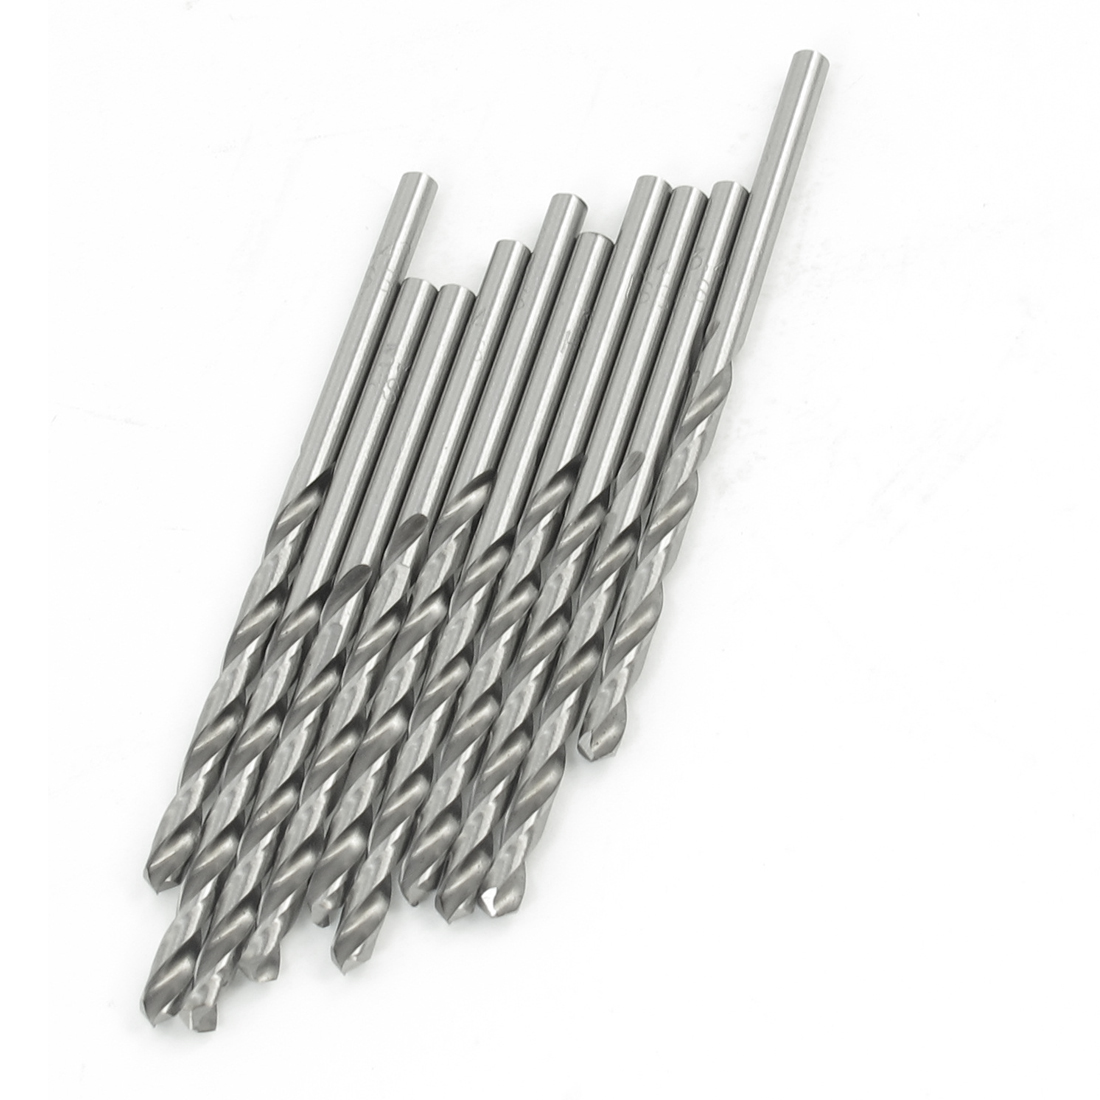 10 Pcs HSS Straight Shank Cutting End Mills Twist Drill Bits 3.4mm Dia